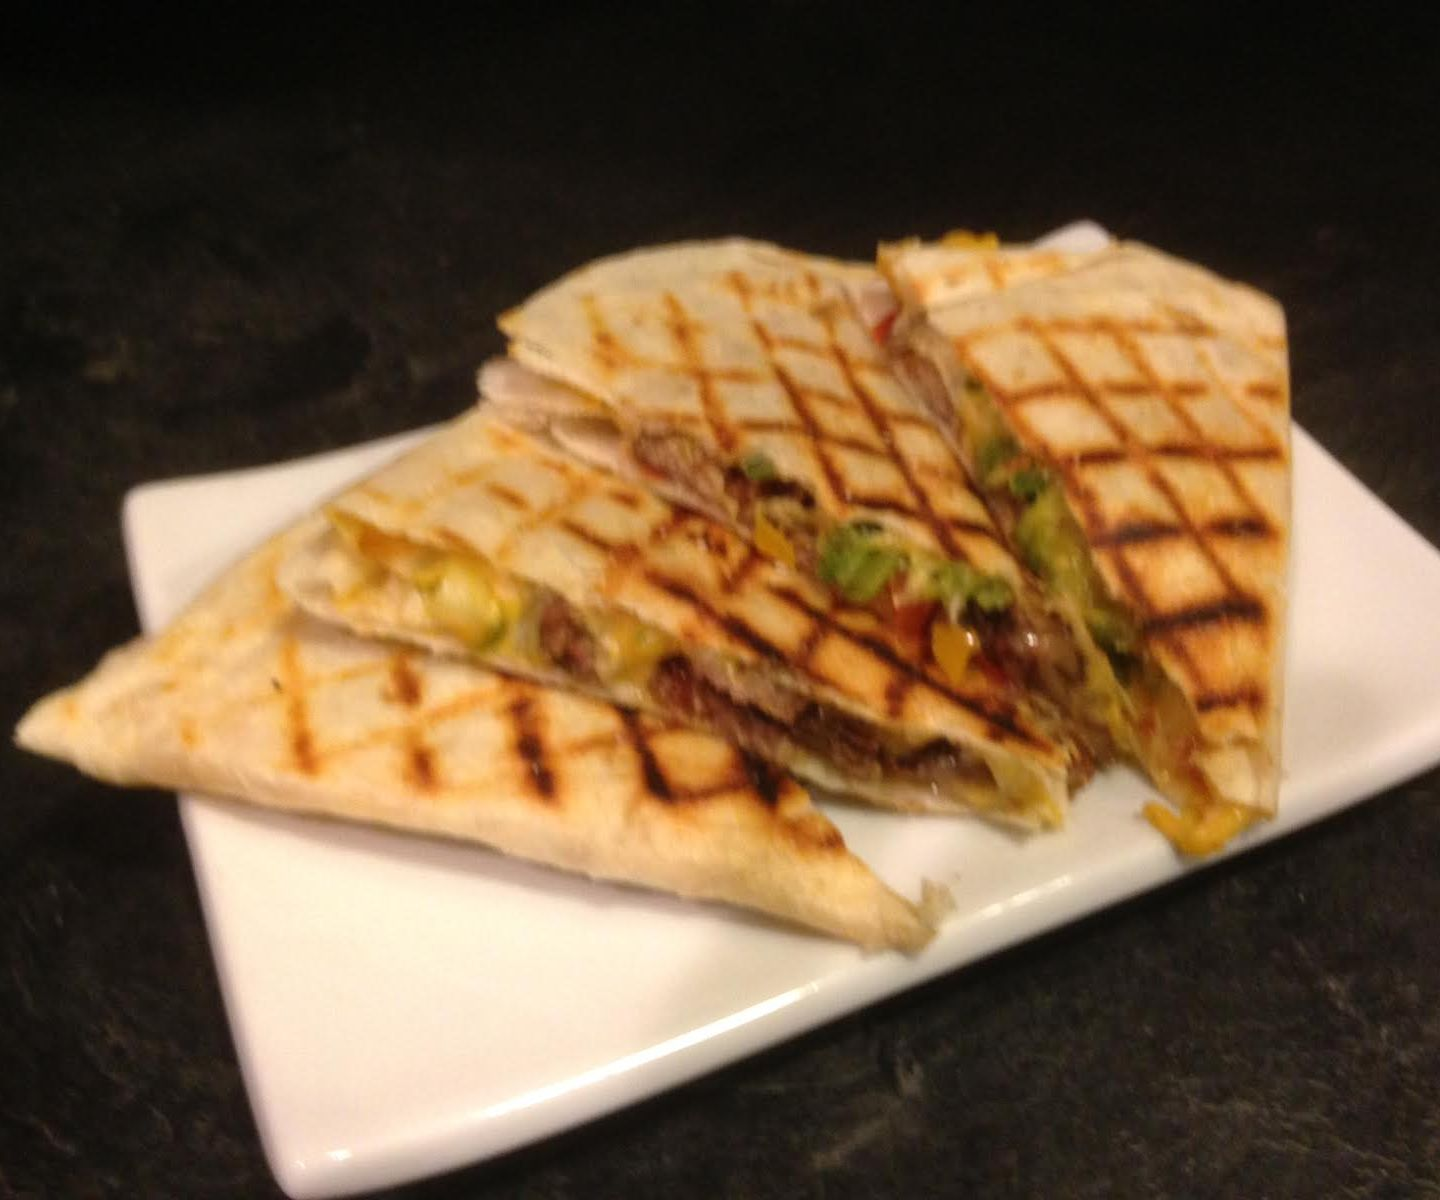 Quesadillas!  An easy way to make them at home.